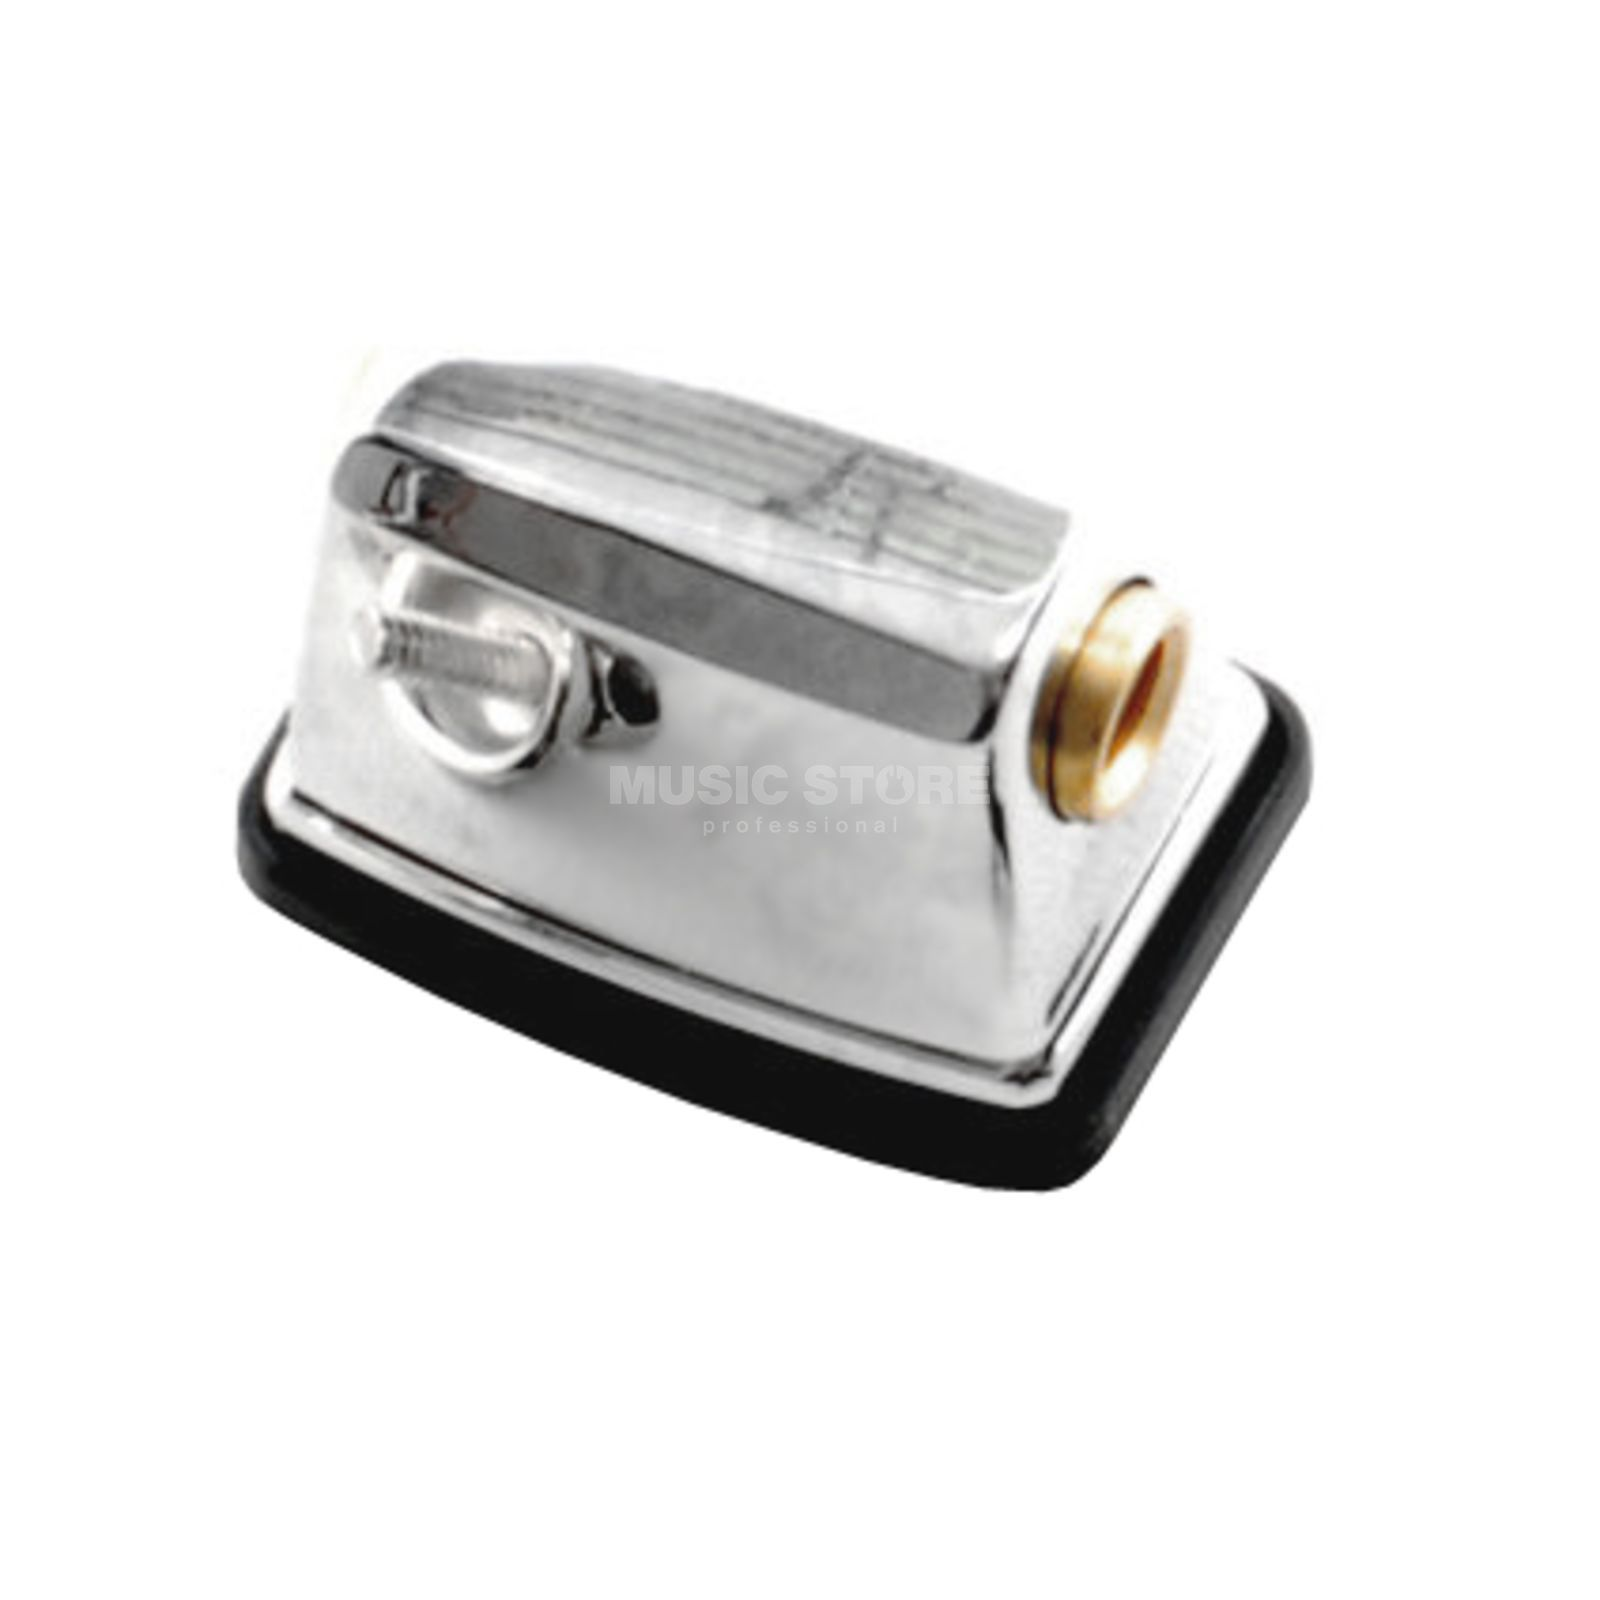 "Pearl CL-05 Classic Lug, 3"" - 4"" shell depth Produktbillede"